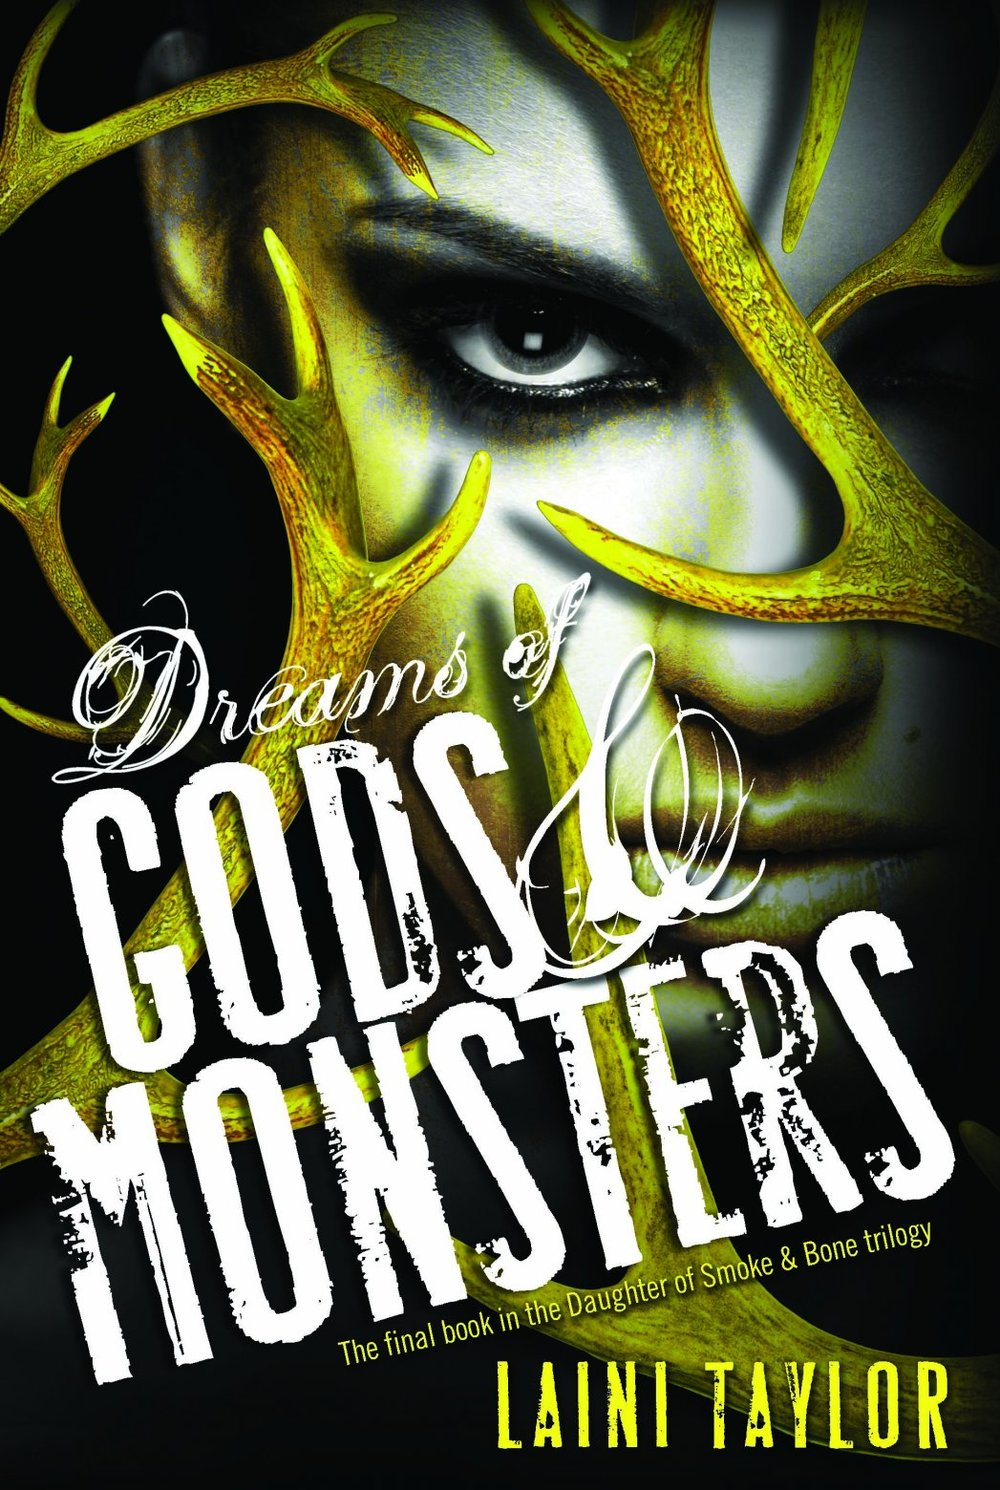 Dreams_of_Gods_and_Monsters.jpg